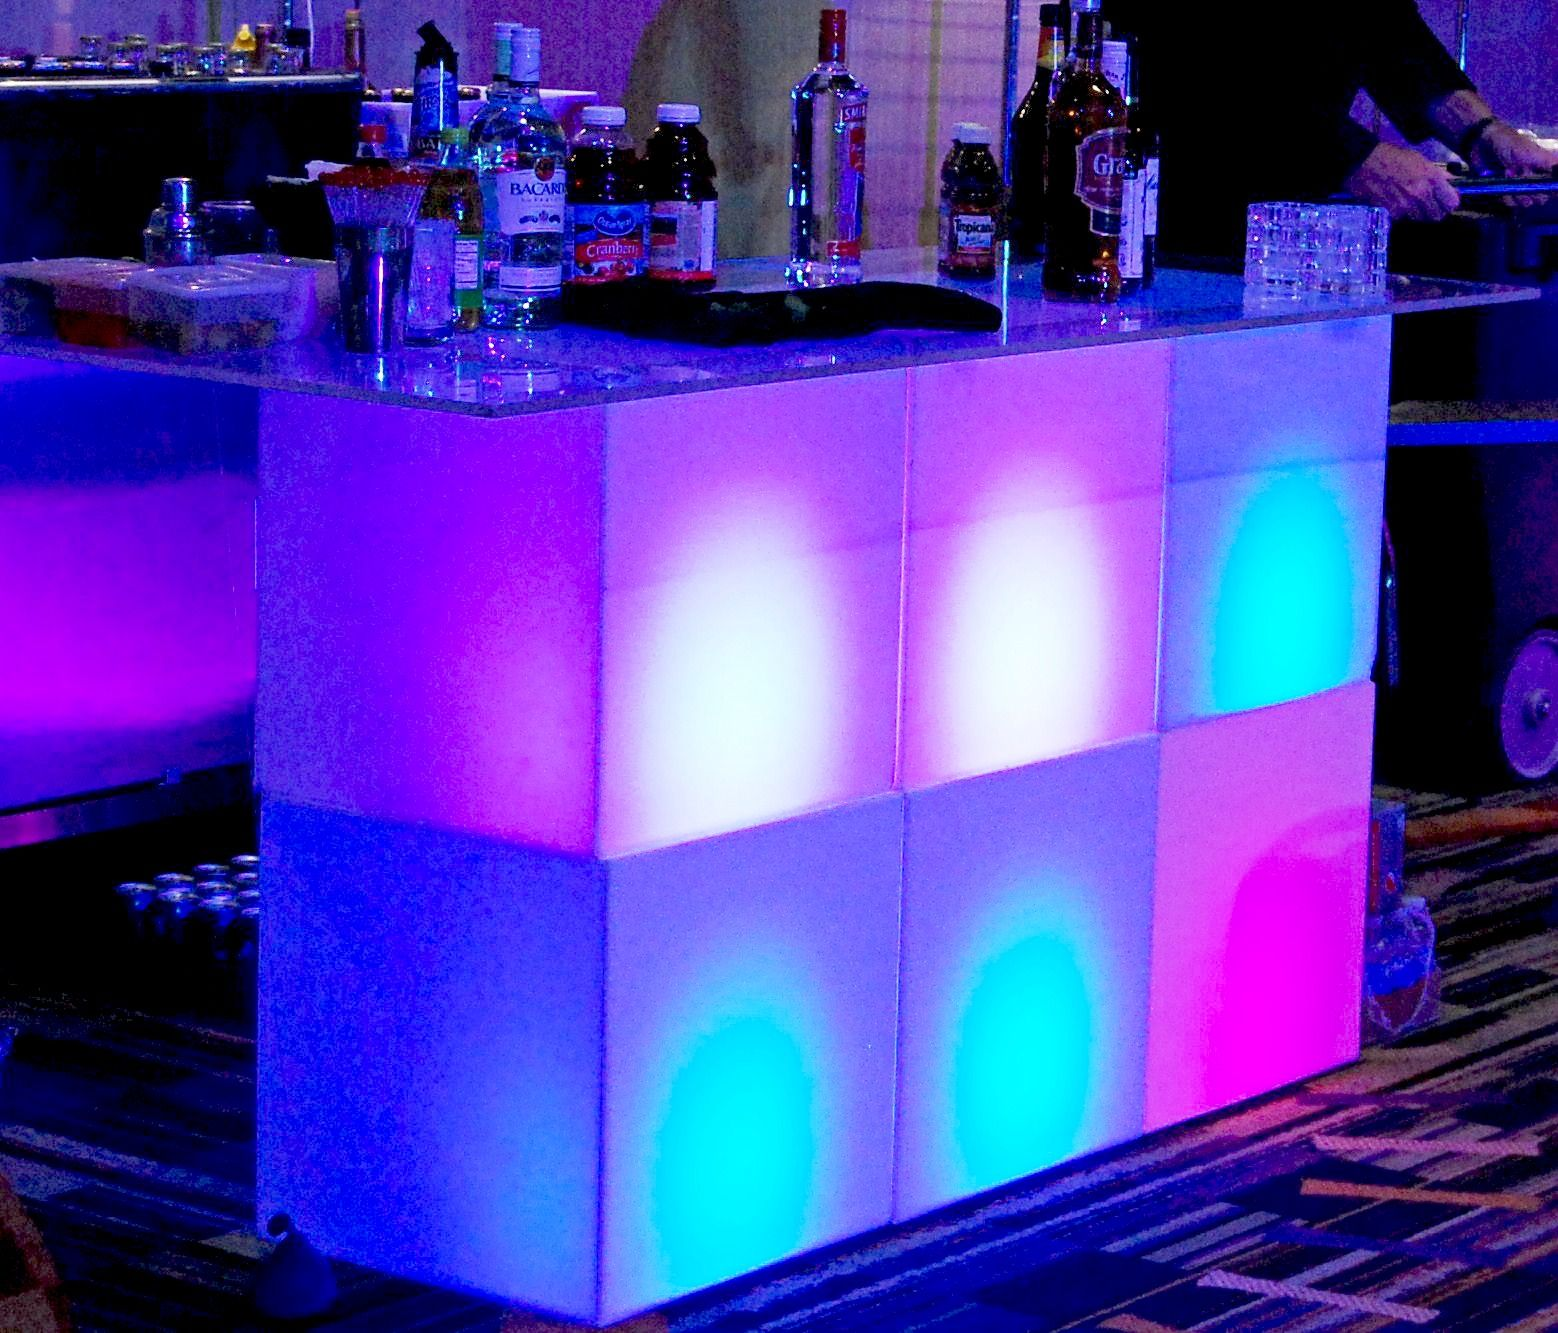 6 Ft Cube Bar W/ LED Lights. Perfect Bar Set Up For Any